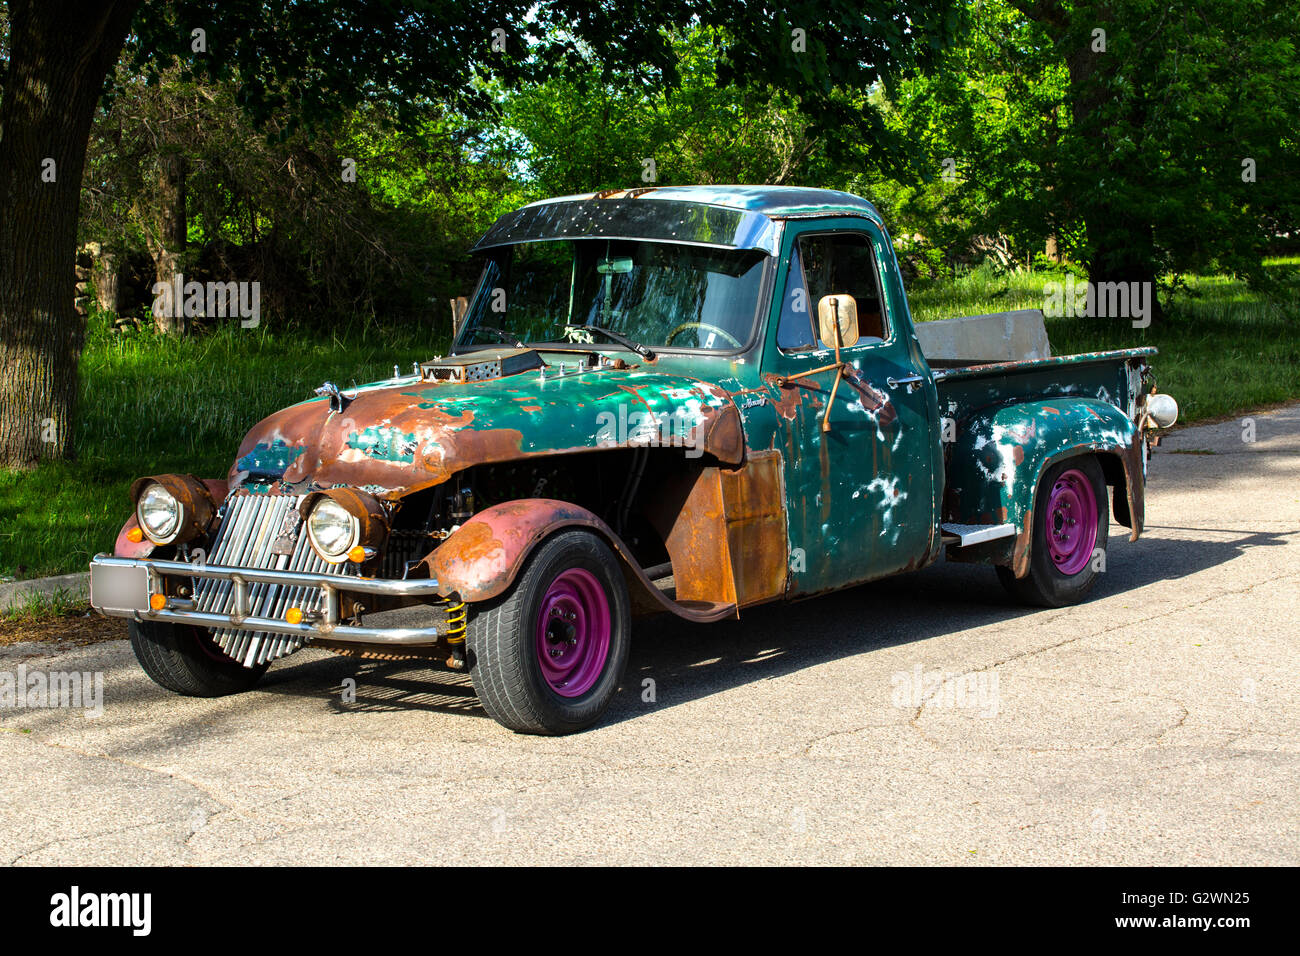 Customized Classic Pickup Truck Stock Photos 1941 Mercury Pick Up 1954 M 100 Rat Rod Image